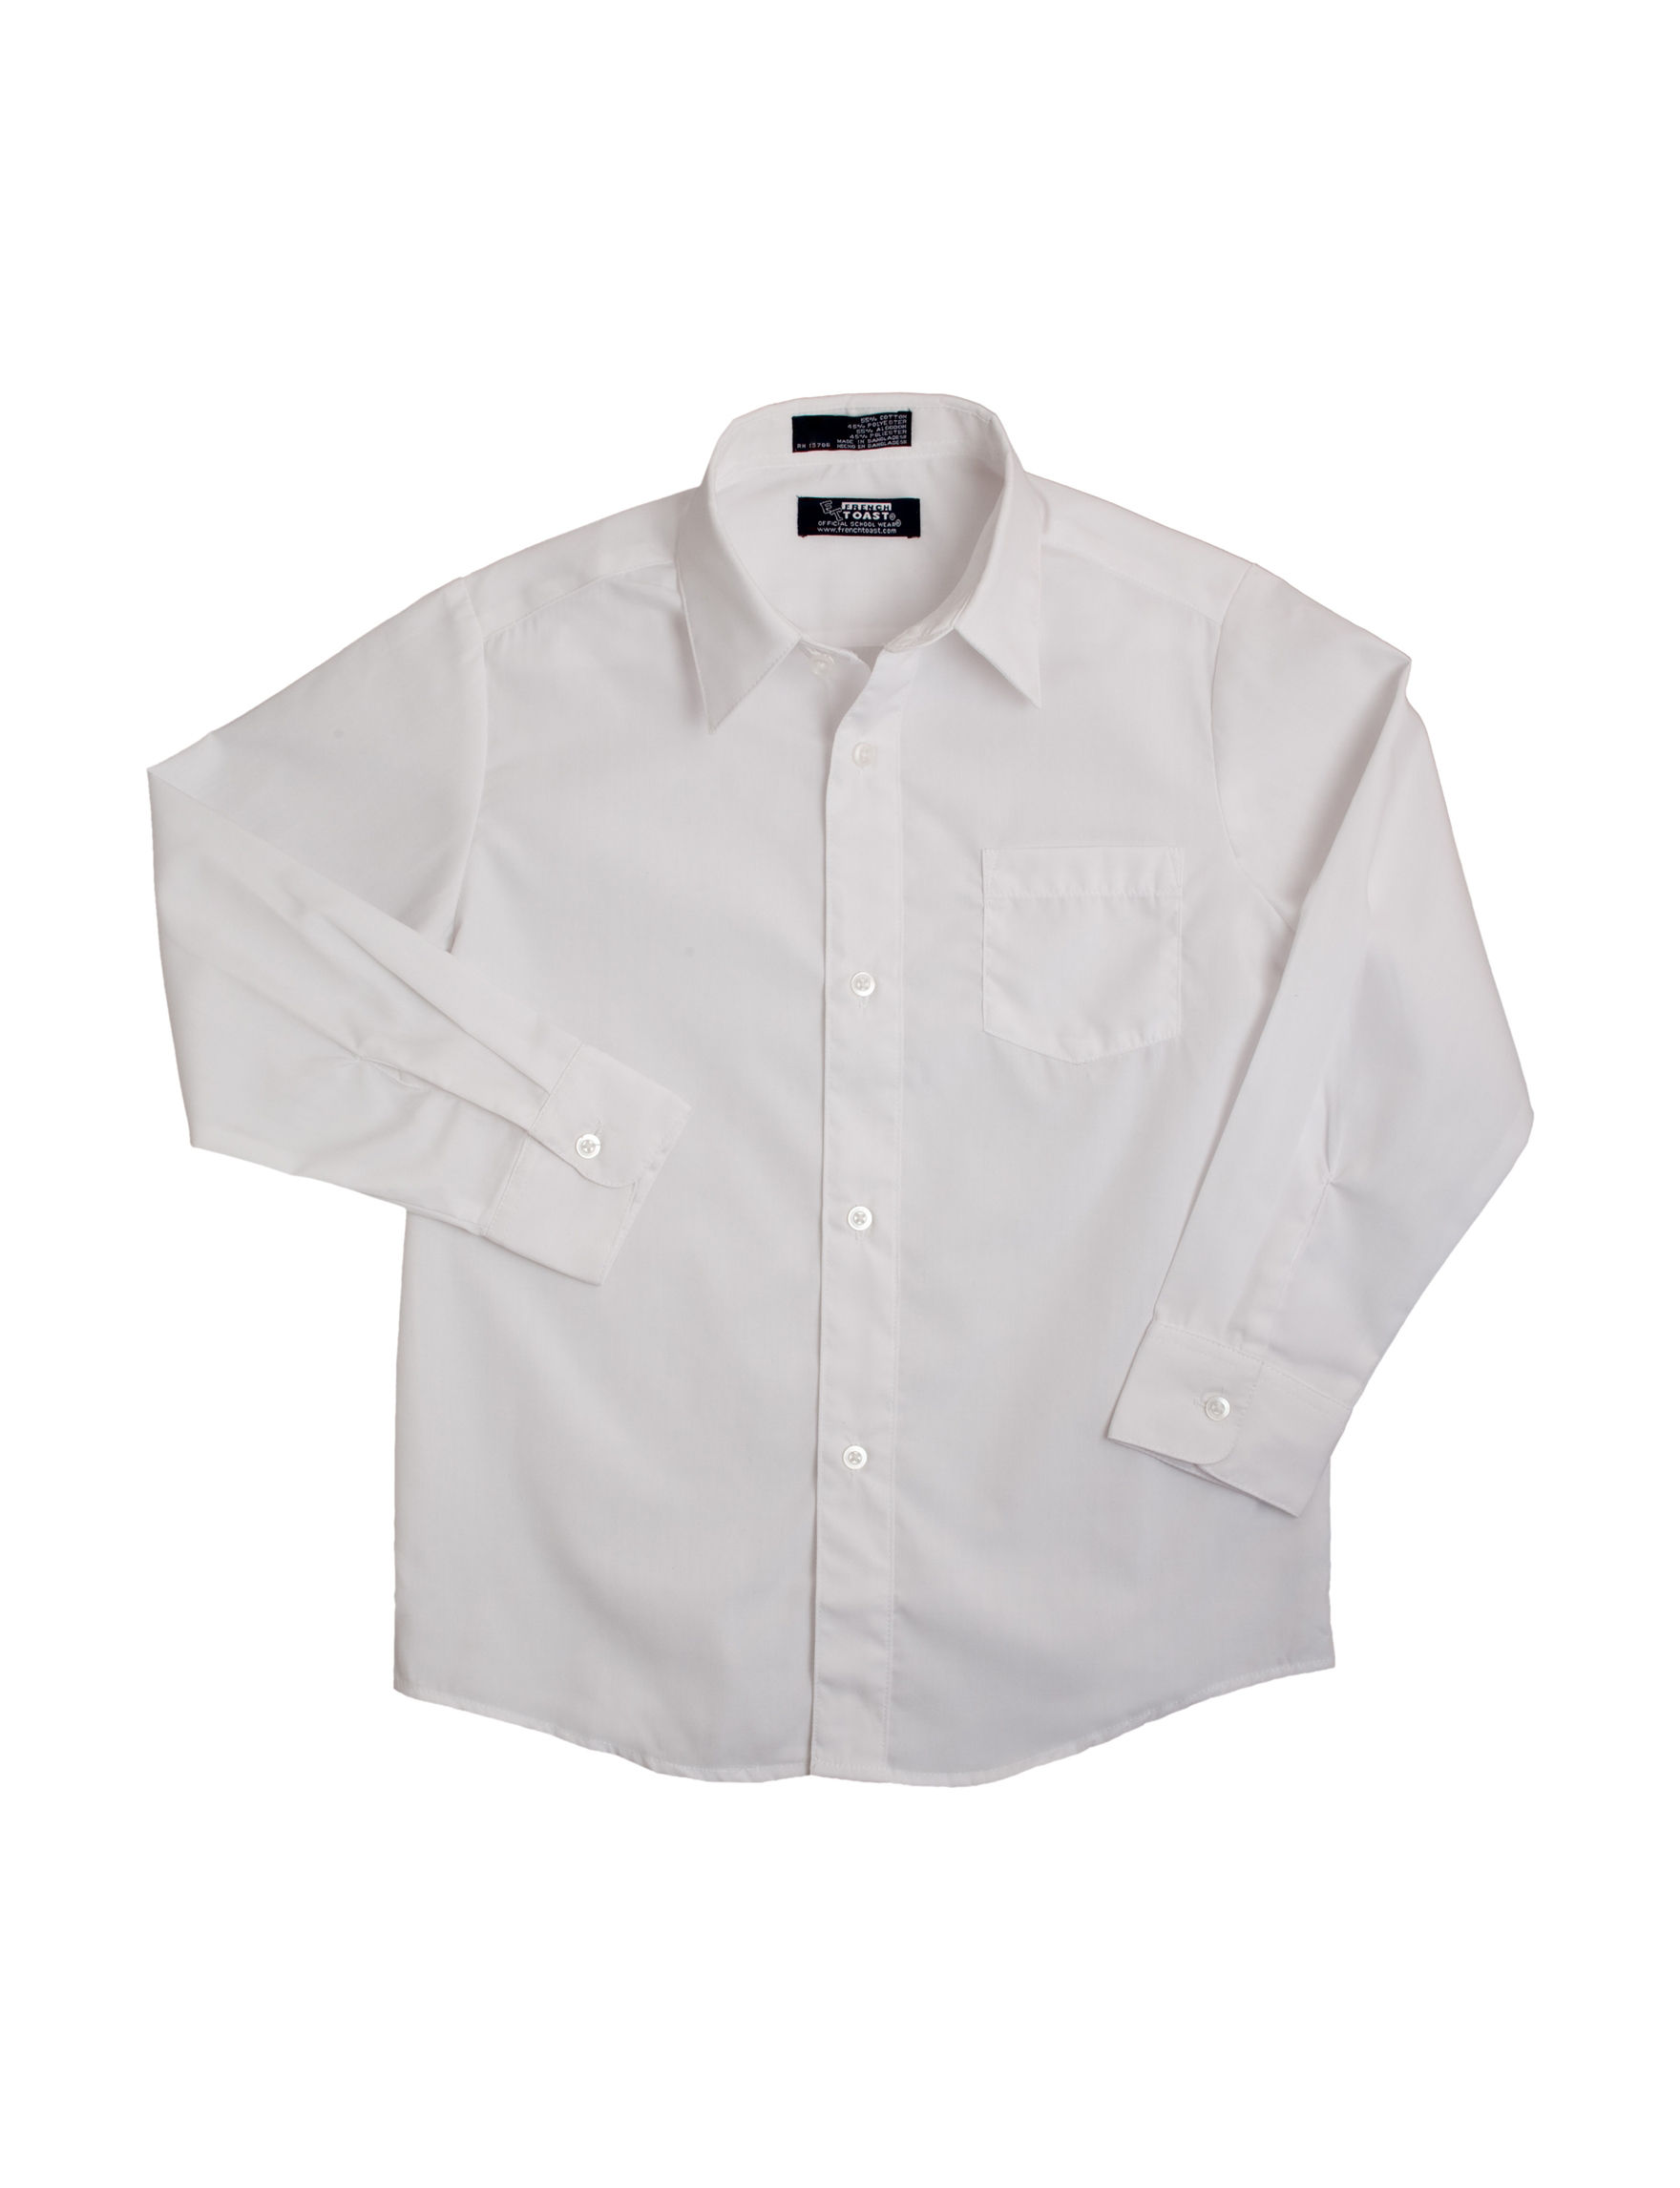 French Toast White Dress Shirts